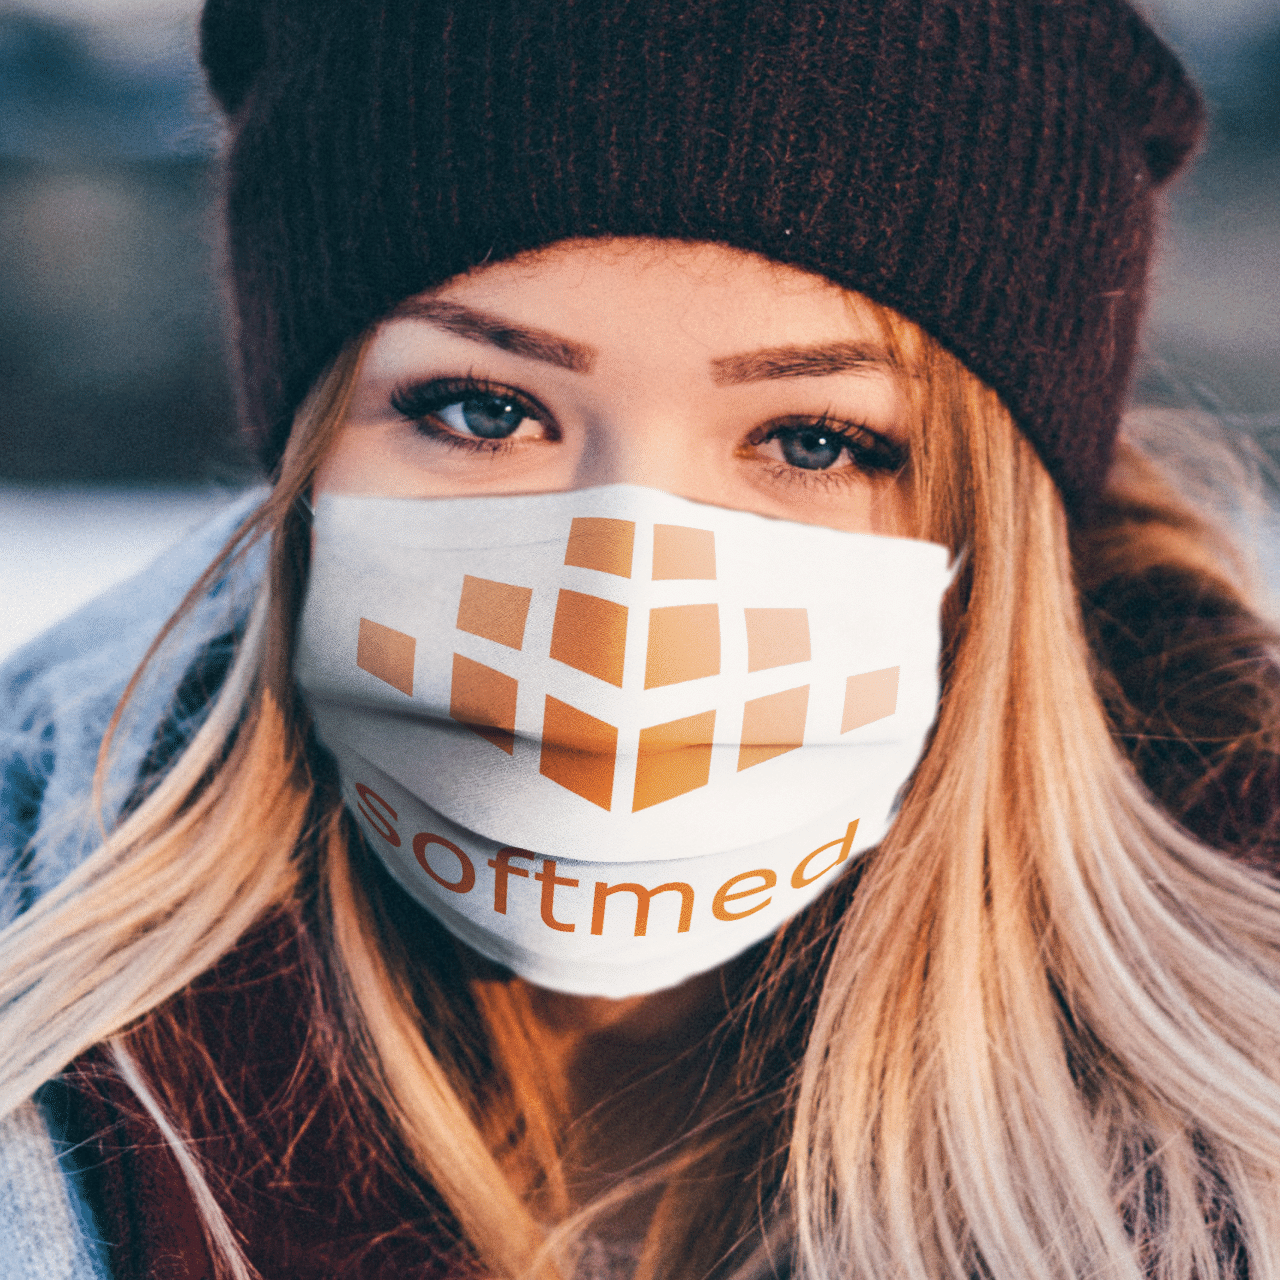 softmed face mask